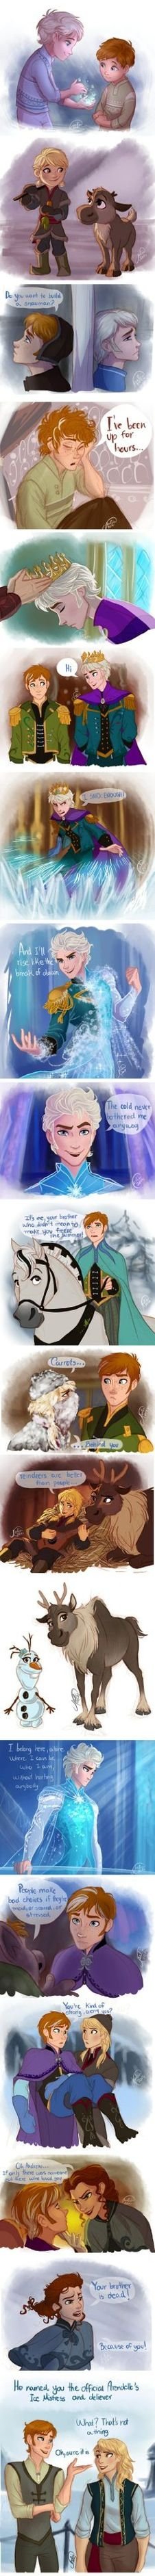 Frozen switched genders